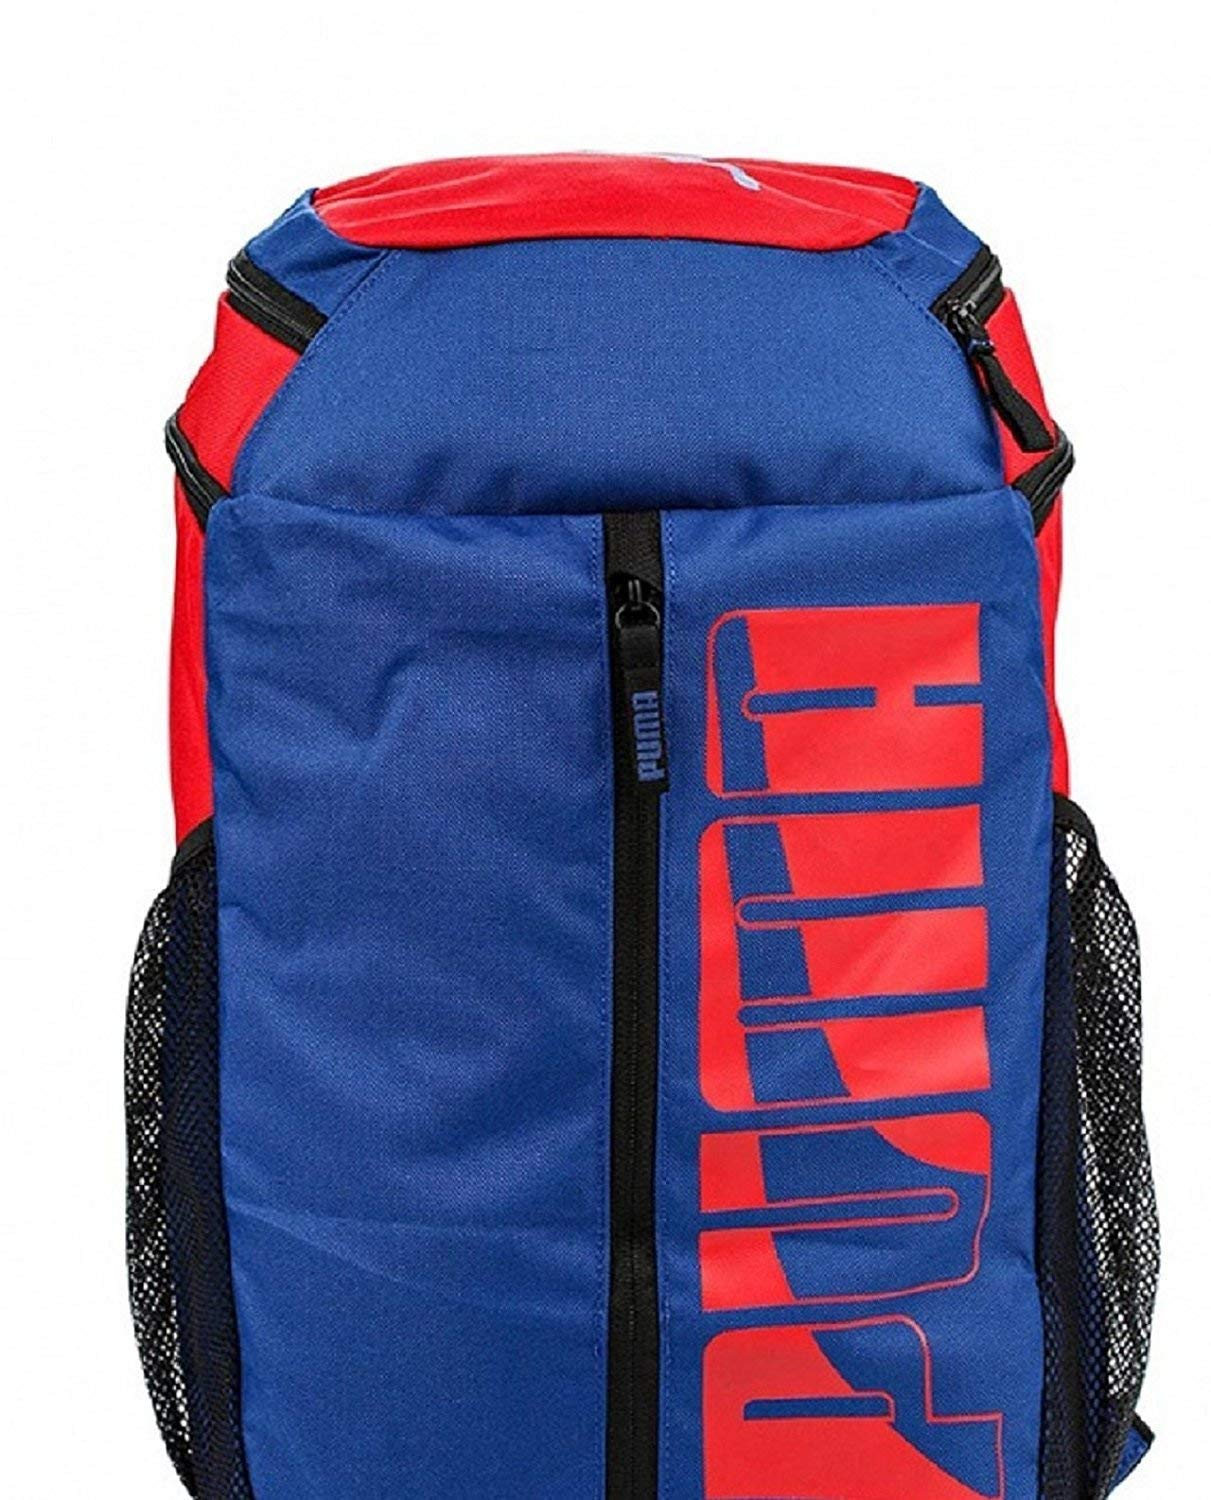 e0bd20e3cc (CERTIFIED REFURBISHED) Puma 24 Ltrs Mazarine Blue Barbados Cherry Casual  Backpack (7411402)  Amazon.in  Bags